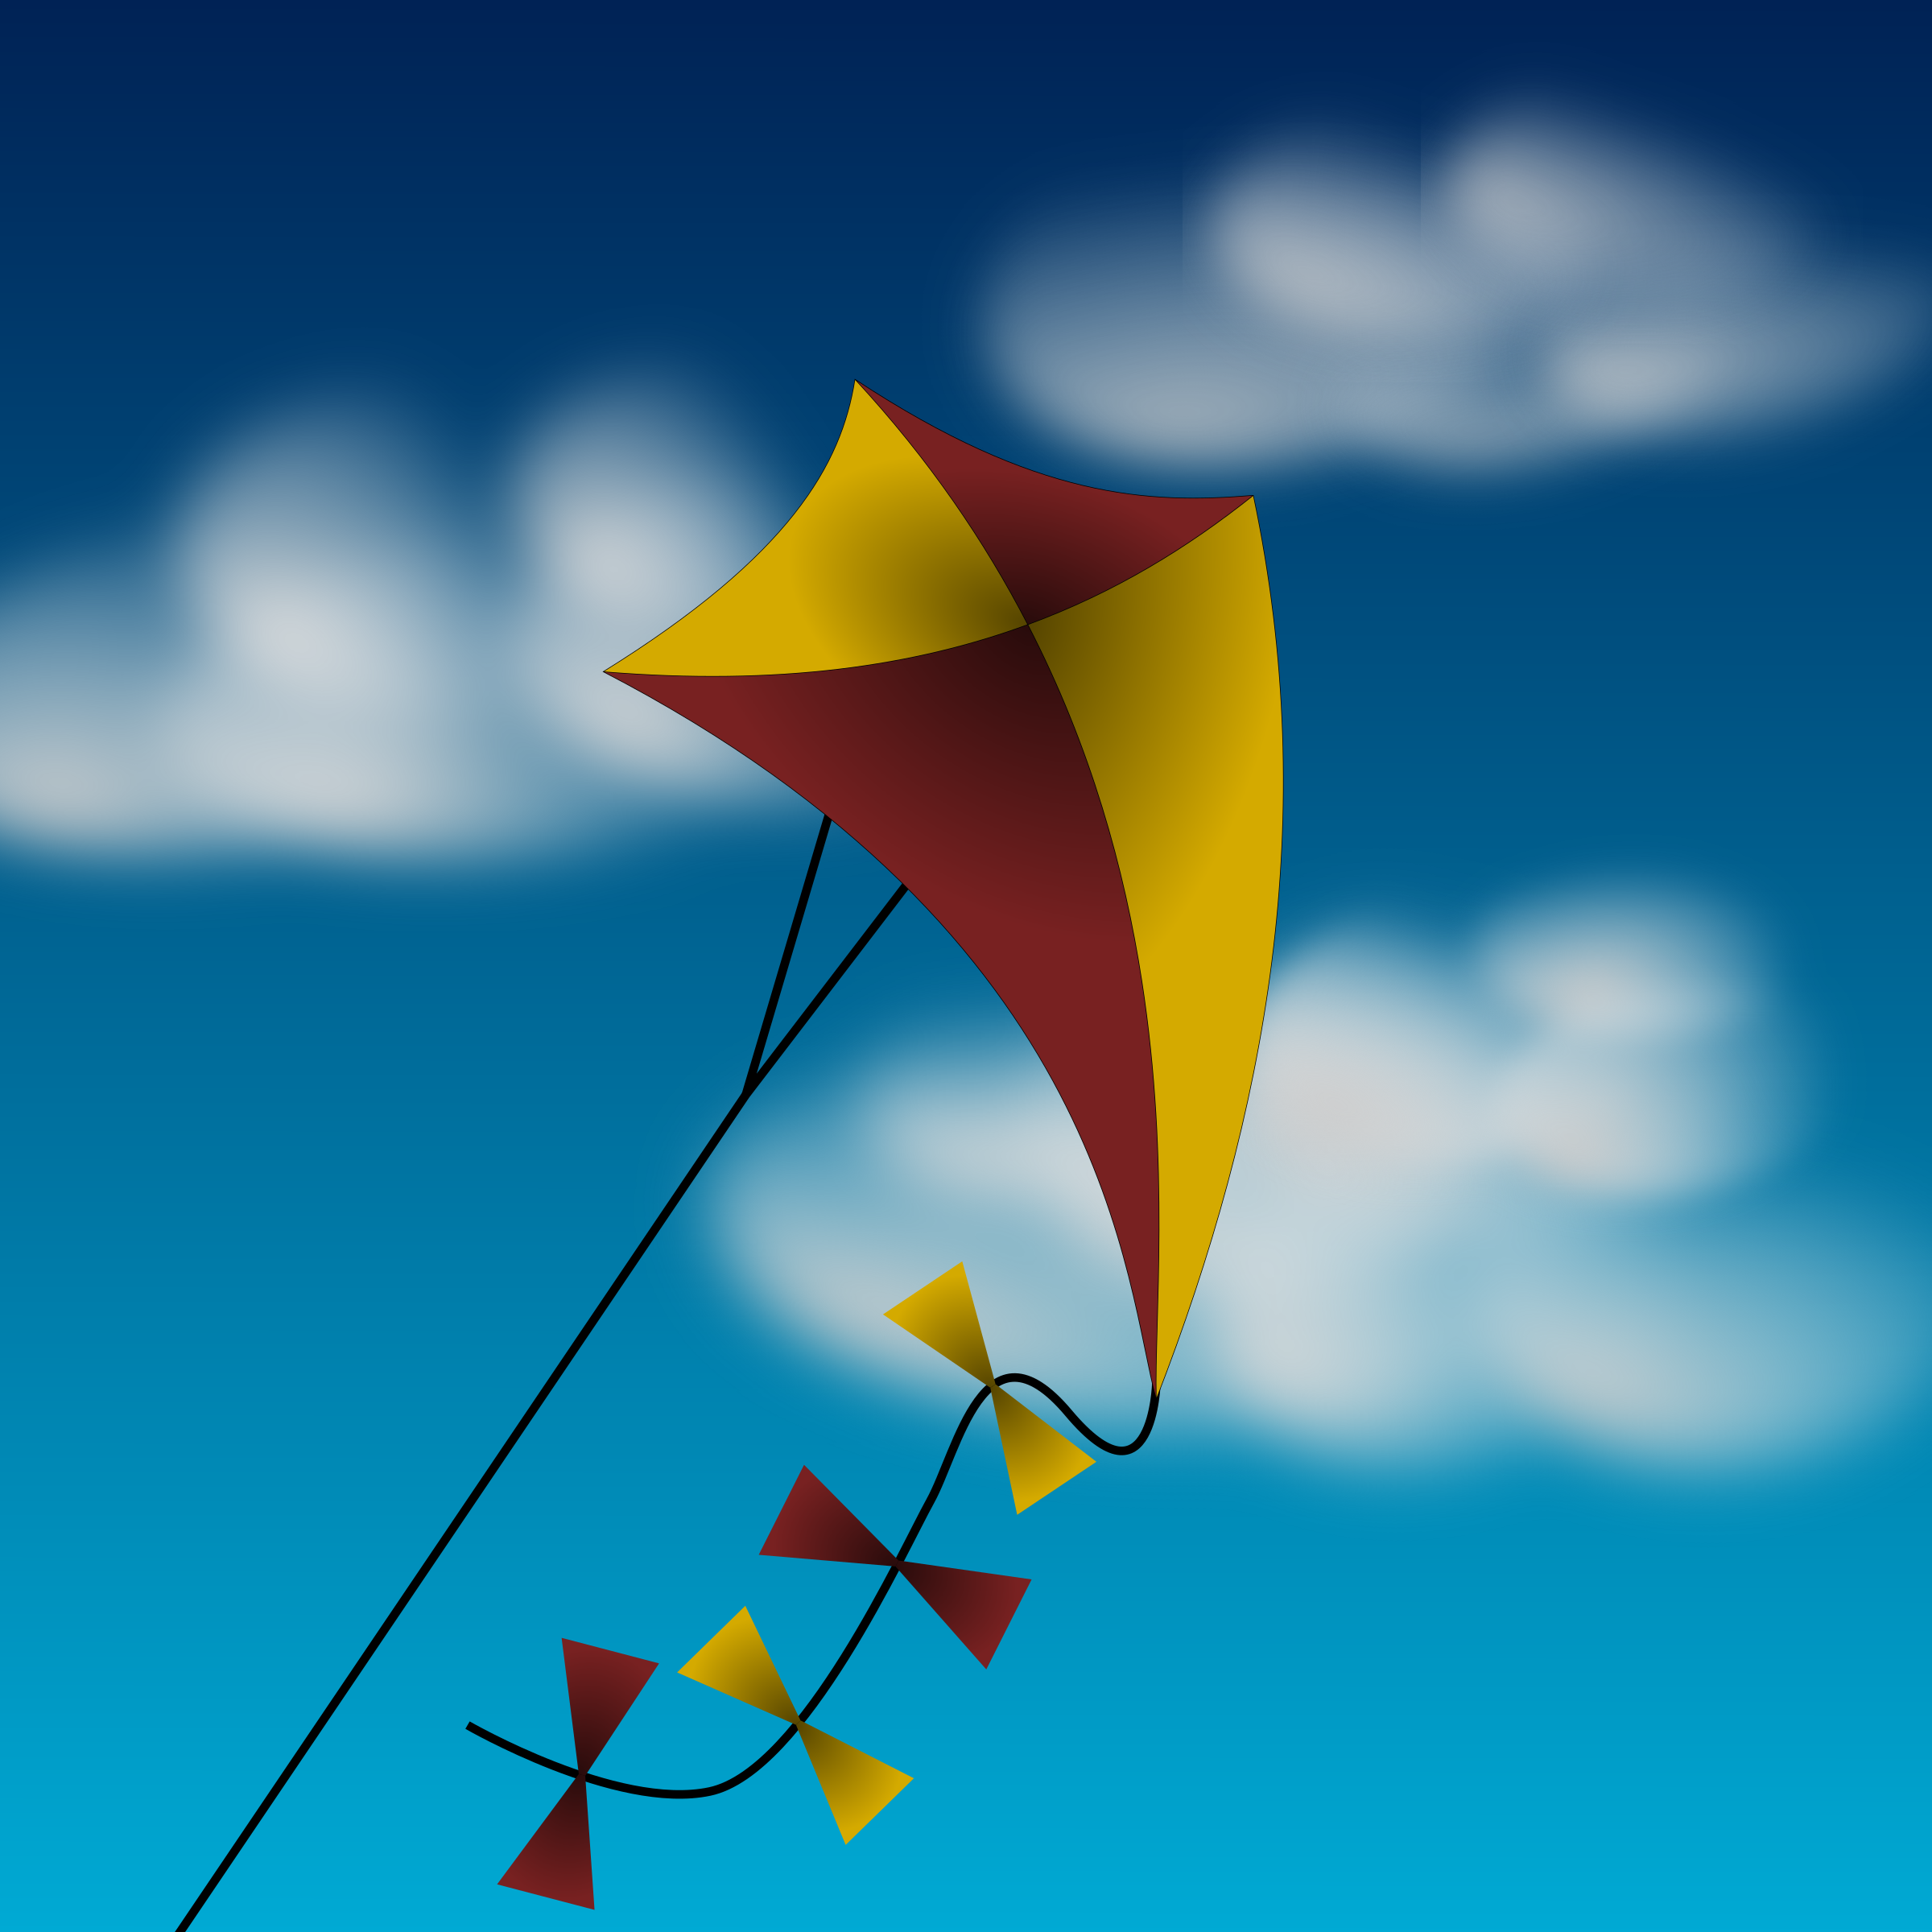 Kite by PomPrint